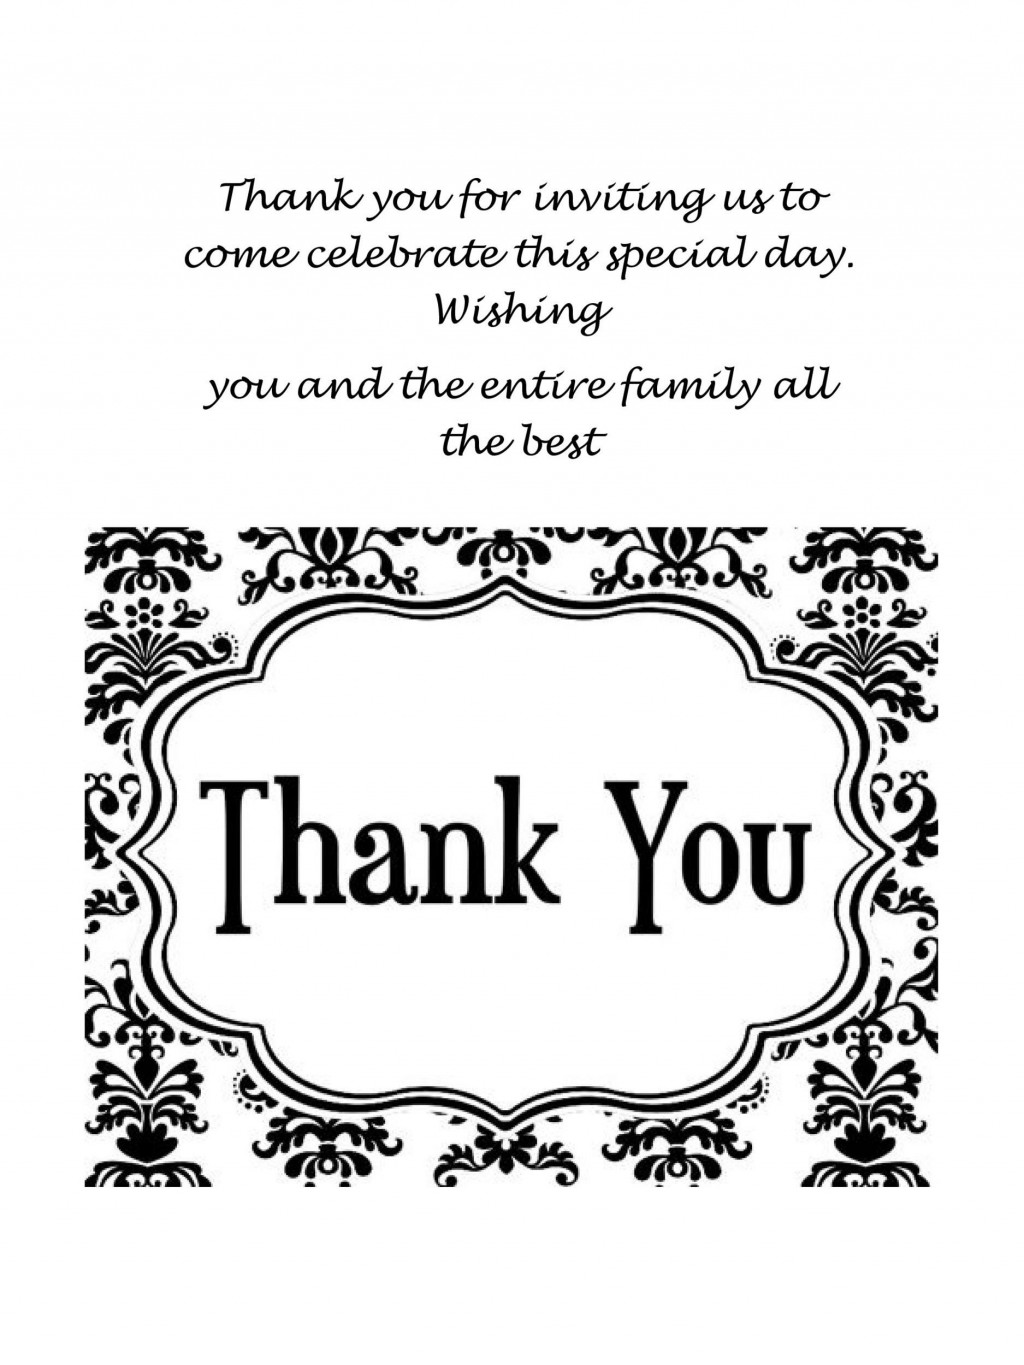 008 Archaicawful Thank You Card Template Design  Wedding Busines Word FreeLarge